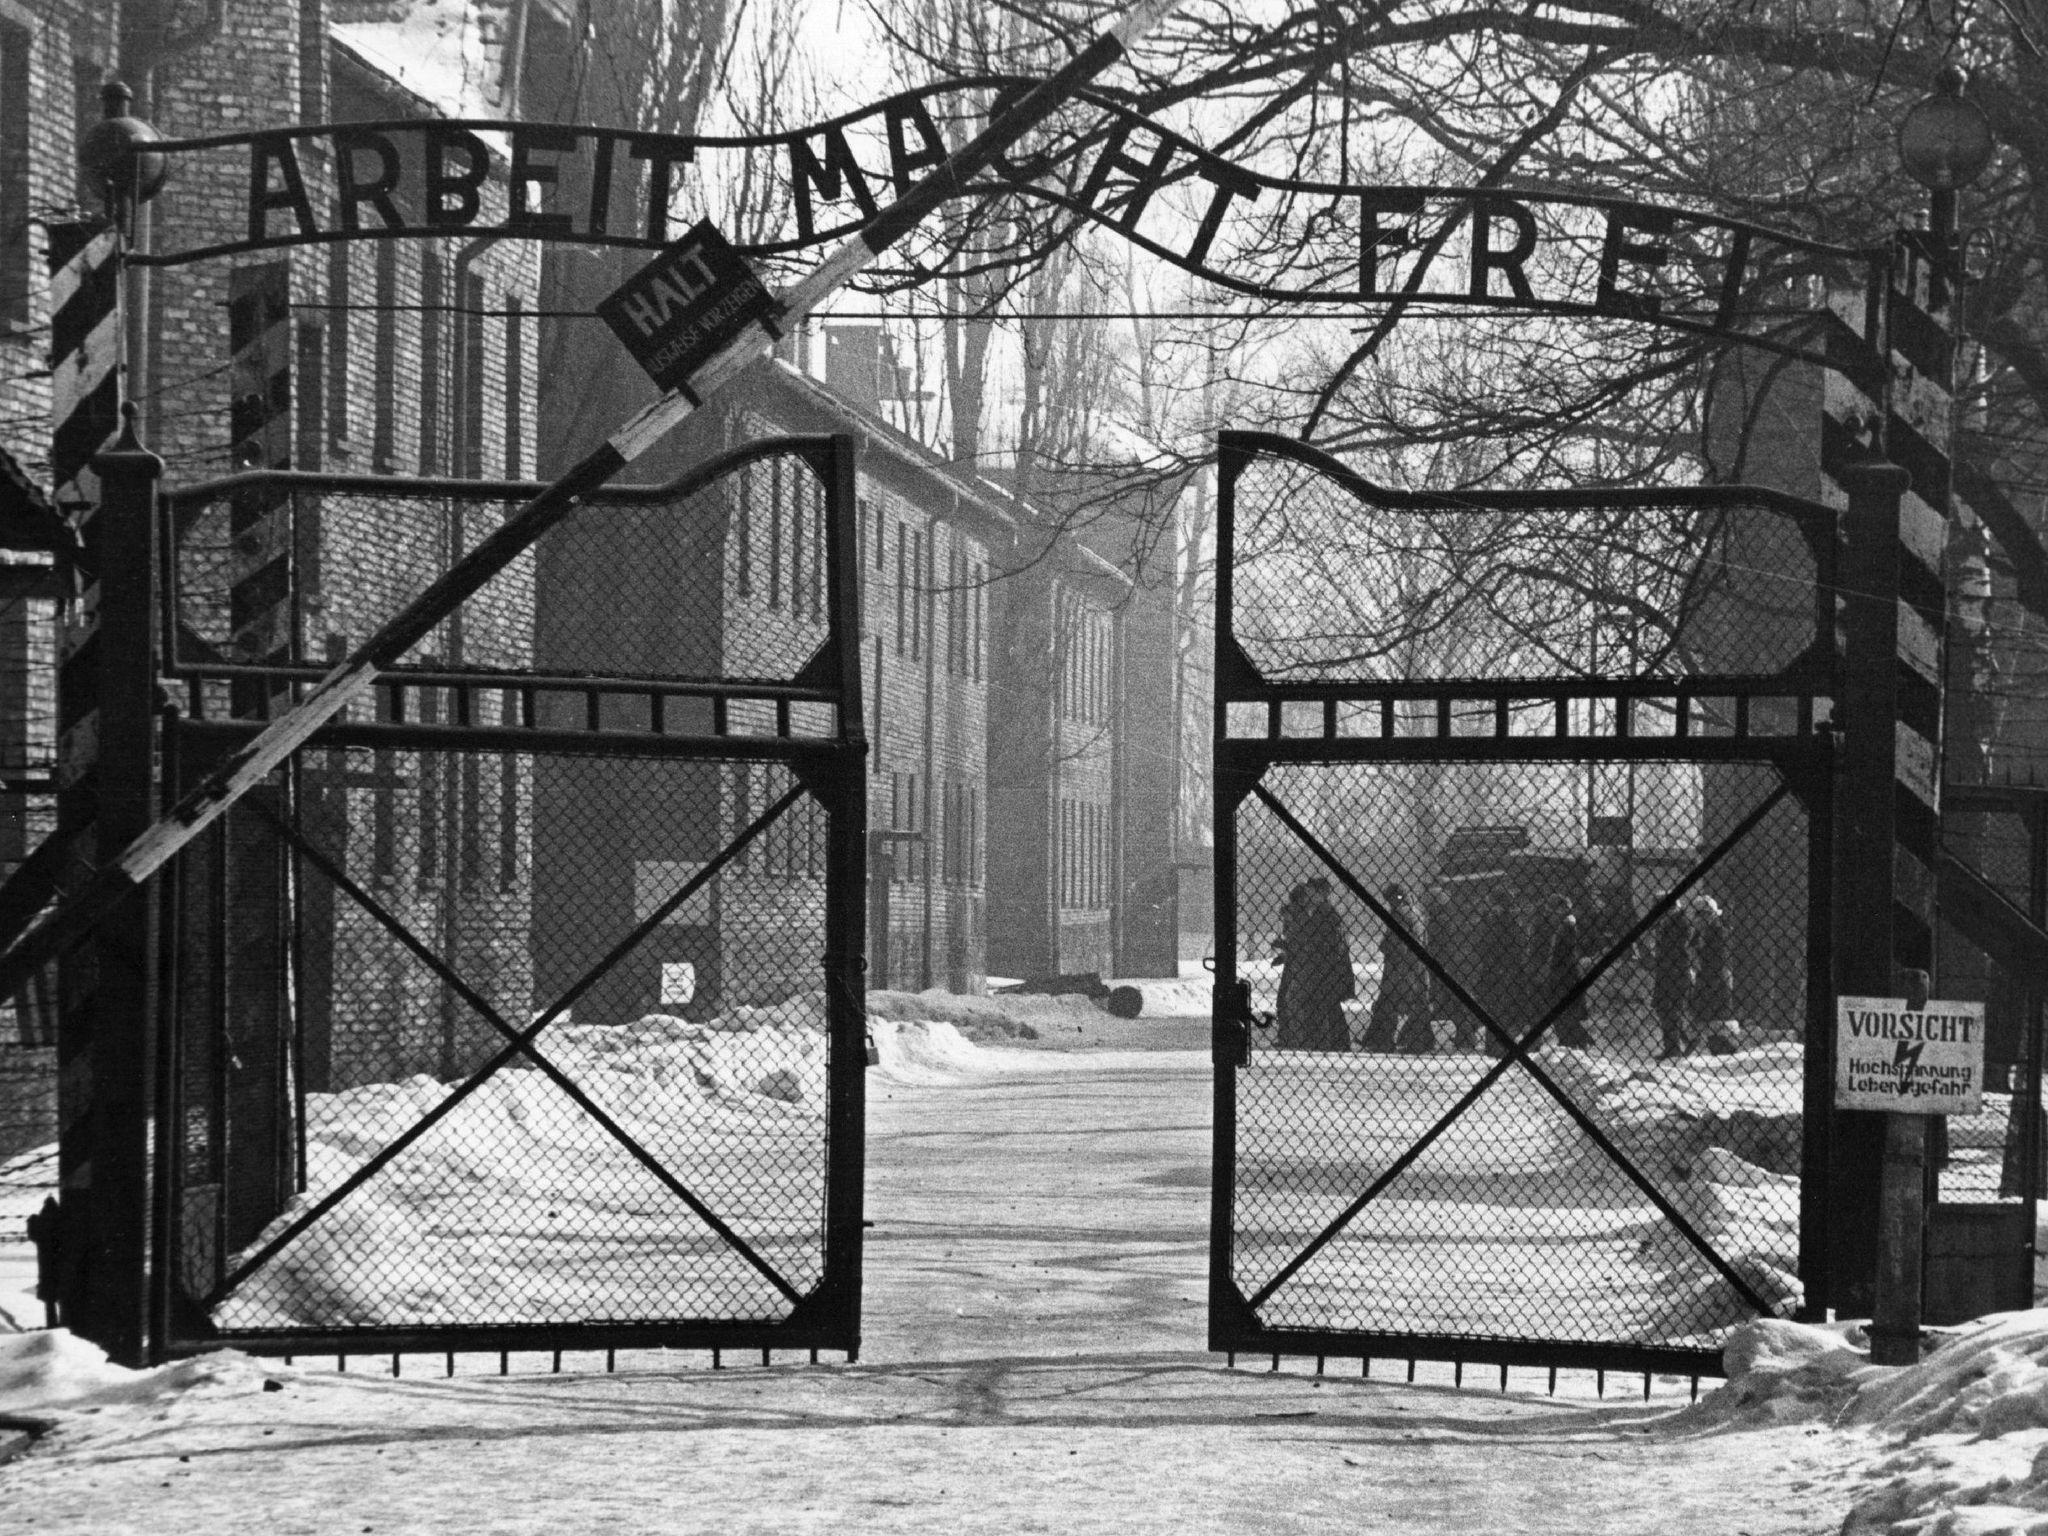 Enamour Nazi Concentration Camp At House Offers Regrets President Referring To Death Death House Dungeon Map Death House Map Pdf Gates curbed Death House Map